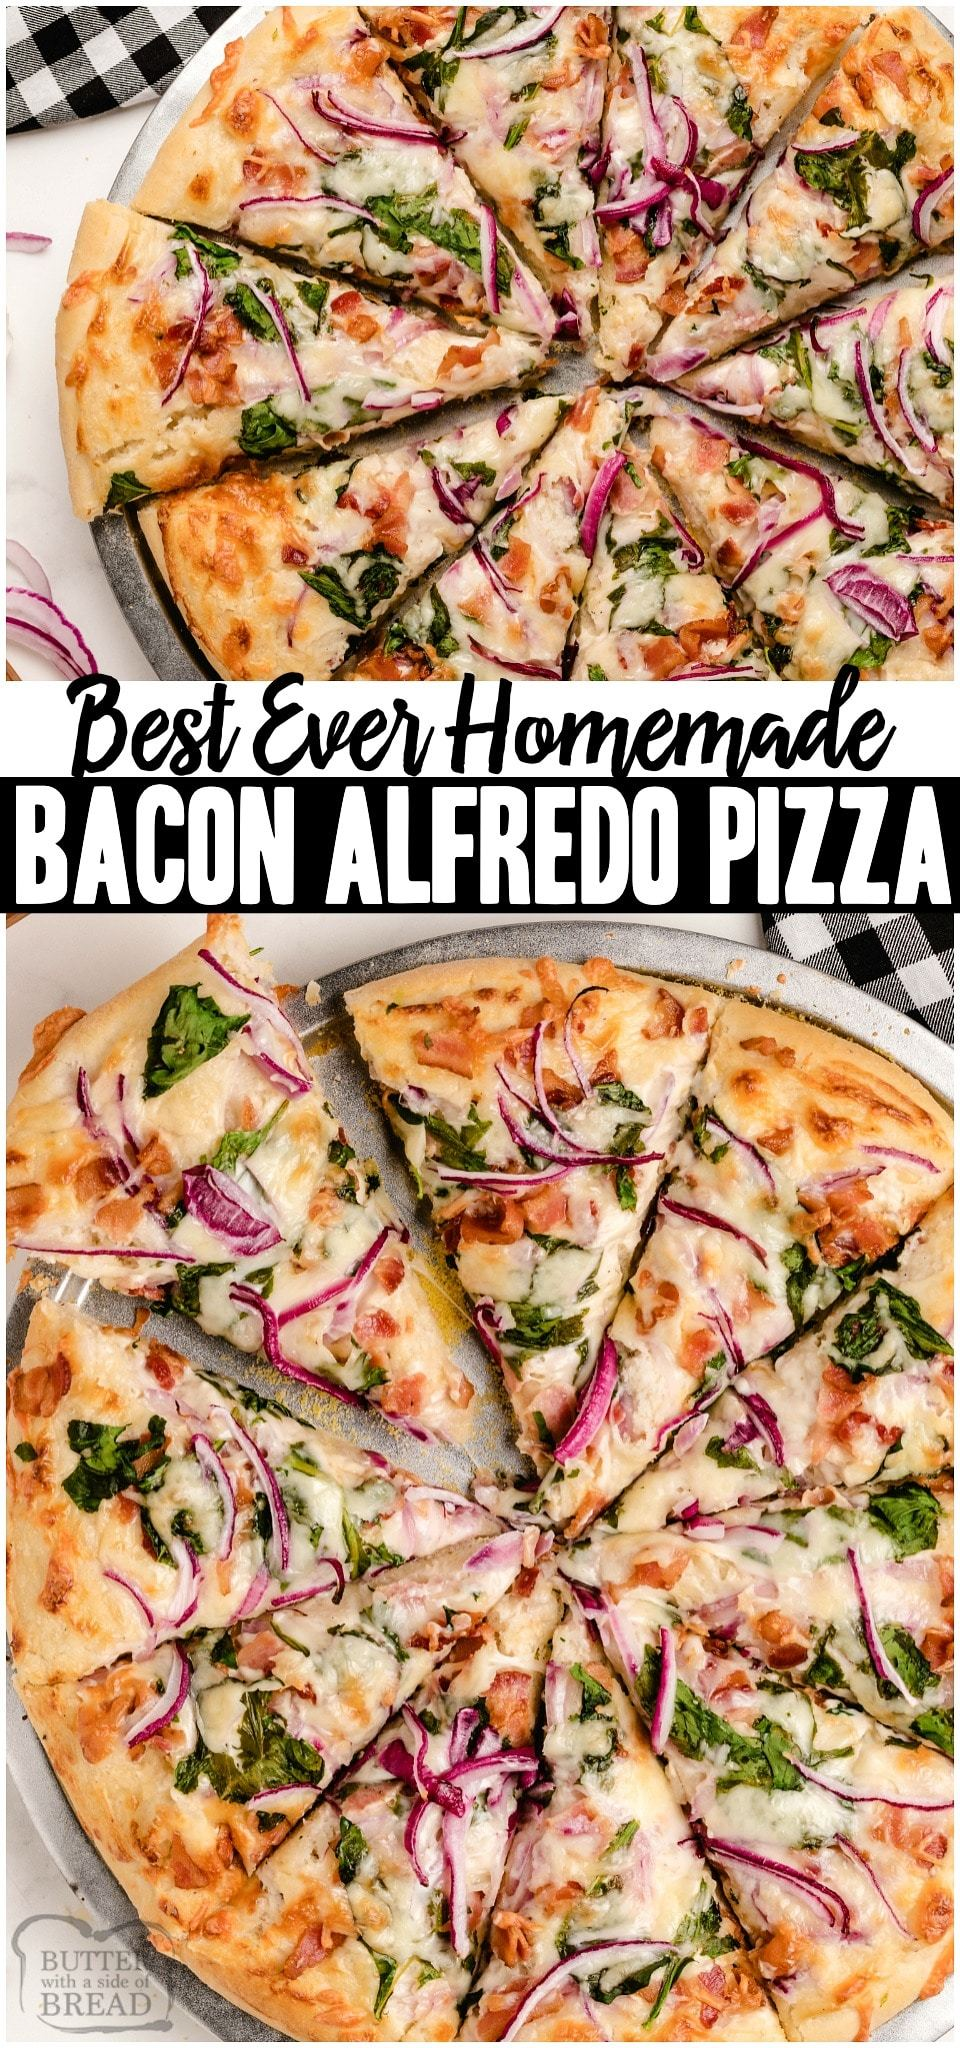 Bacon Alfredo Pizza baked fresh with cheesy Alfredo sauce topped with crispy bacon, cheese and some veggies! Easy recipe yields two Homemade Pizzas perfect for a fun weeknight dinner!#pizza #bacon #alfredo #homemade #recipe from BUTTER WITH A SIDE OF BREAD